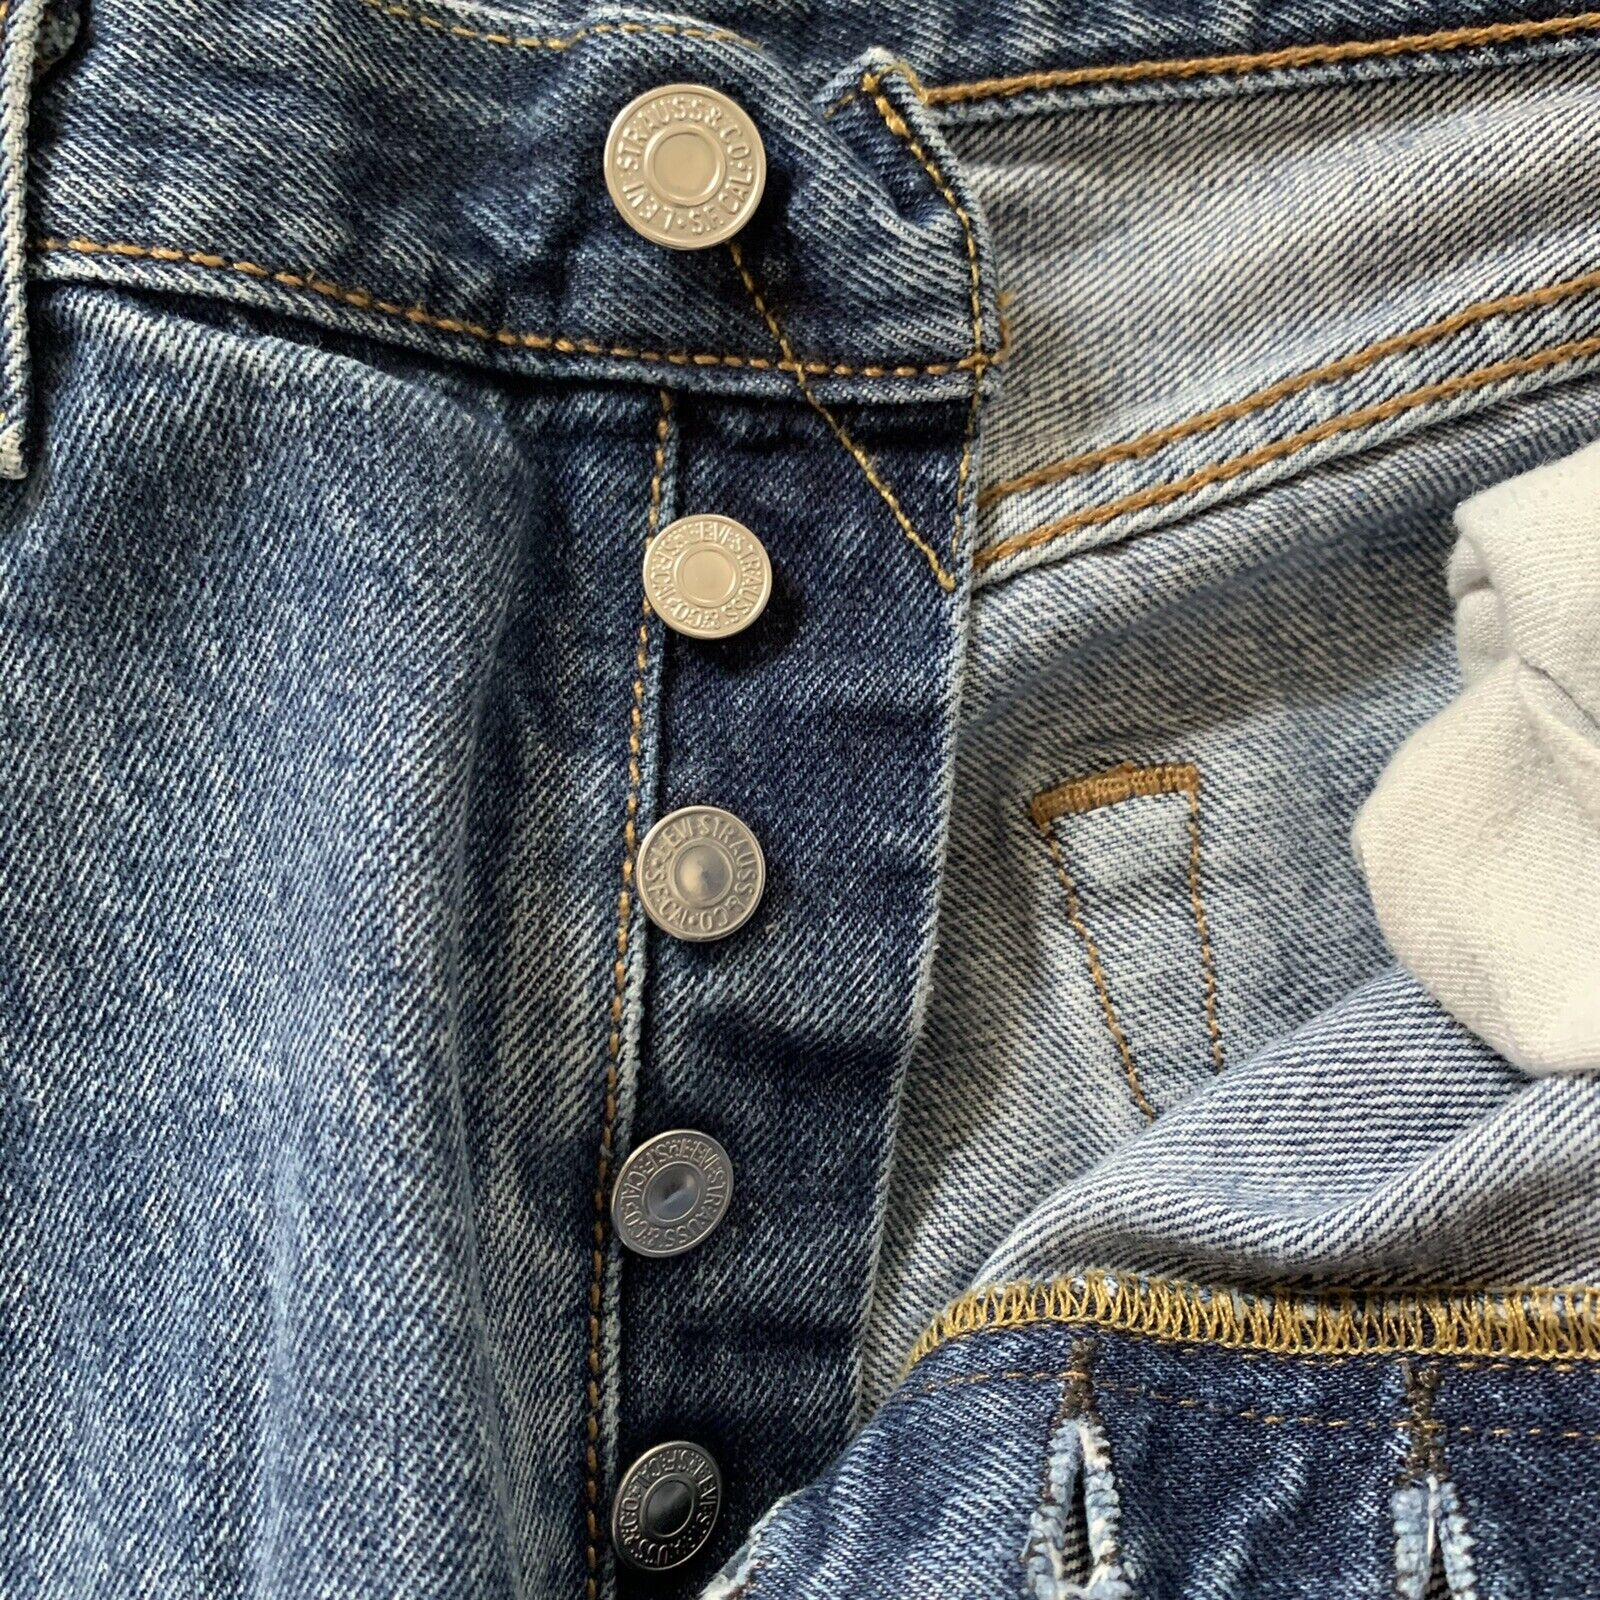 Vintage Levi's 501 Button Fly Distressed Jeans Me… - image 9